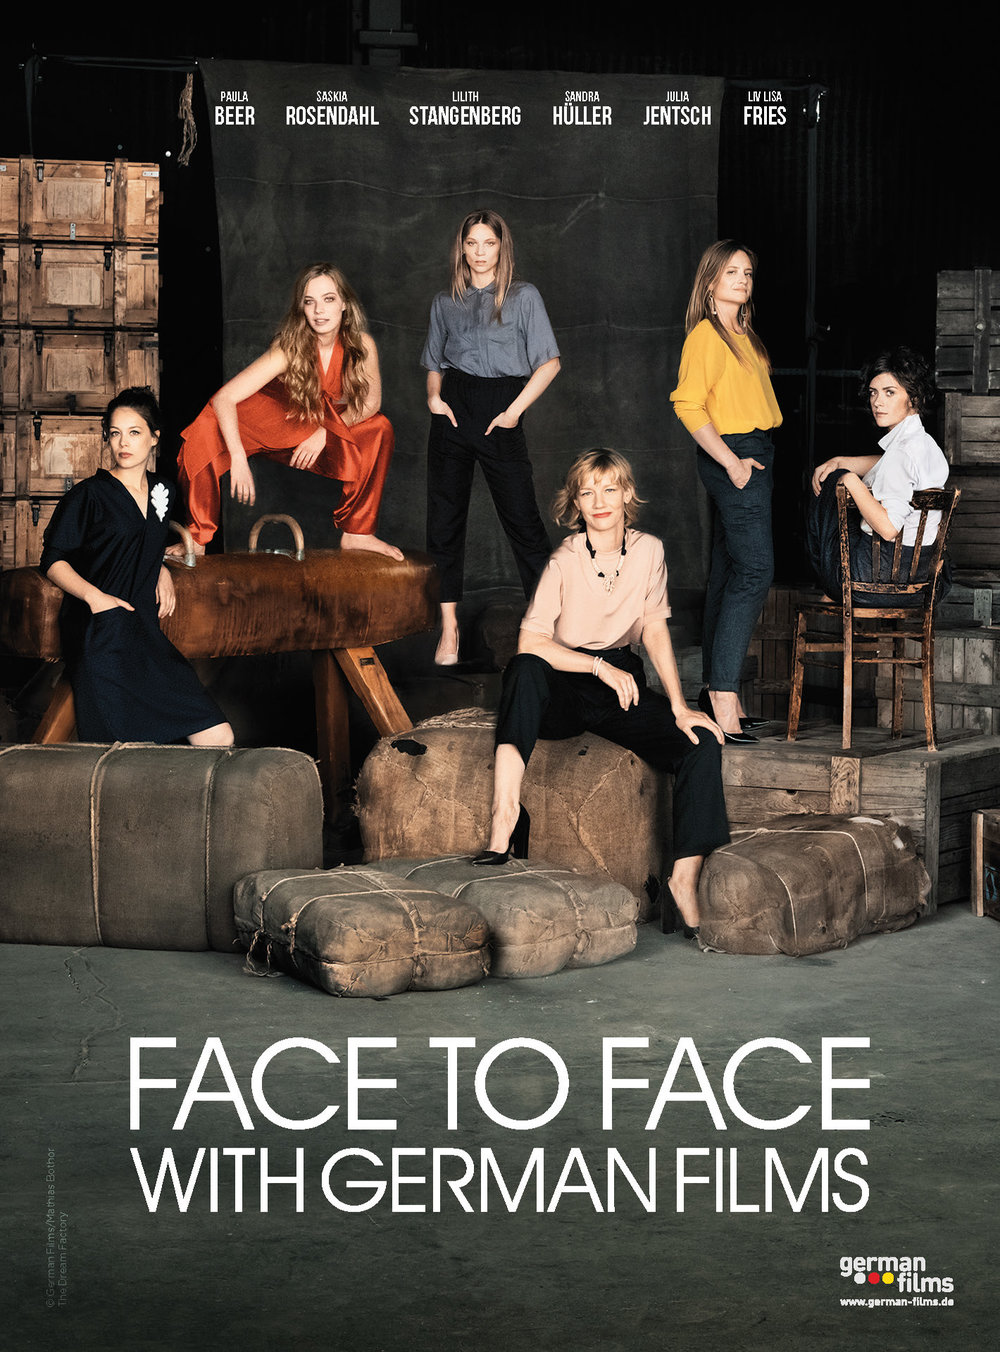 GermanFilms_FaceToFace_Advert_AFIFEST2016_4,25x5,75.jpg